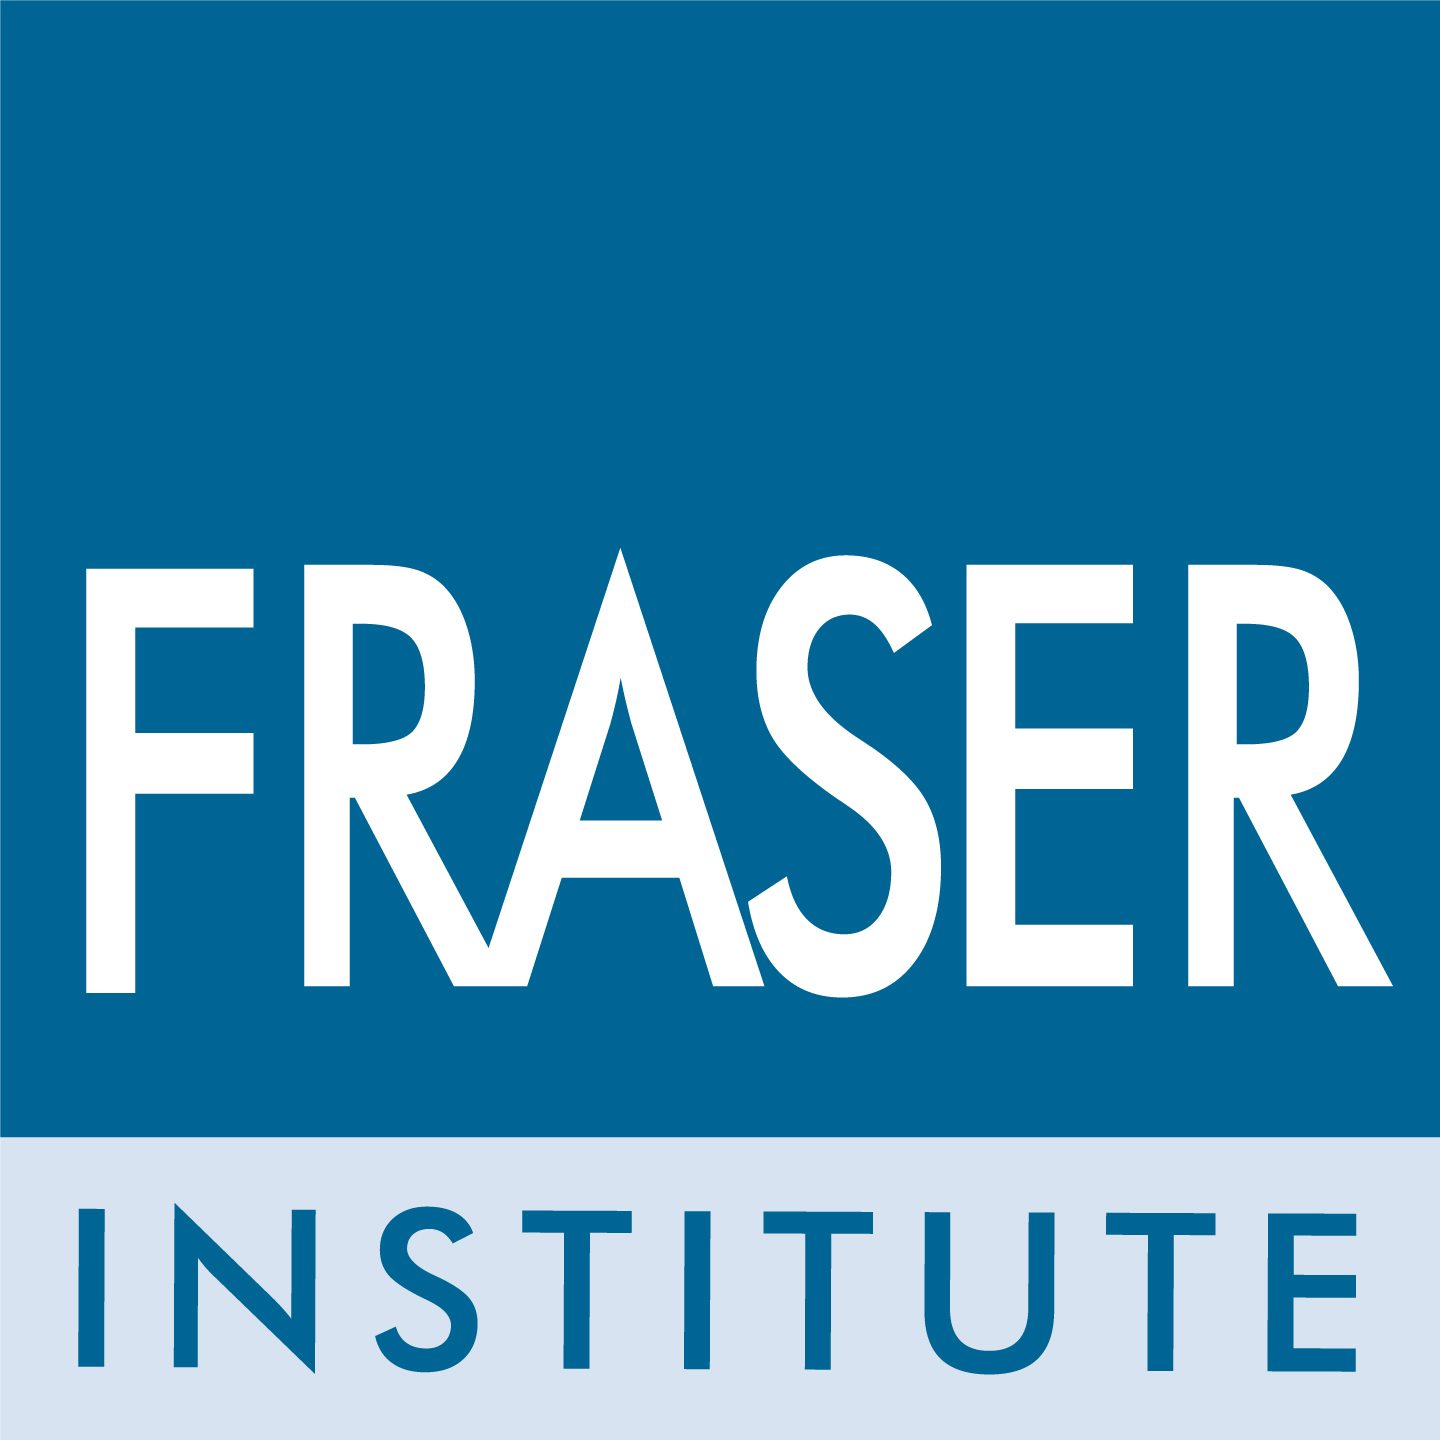 Fraser Institute Media Advisory: New study on government debt in Canada coming Thursday, Jan